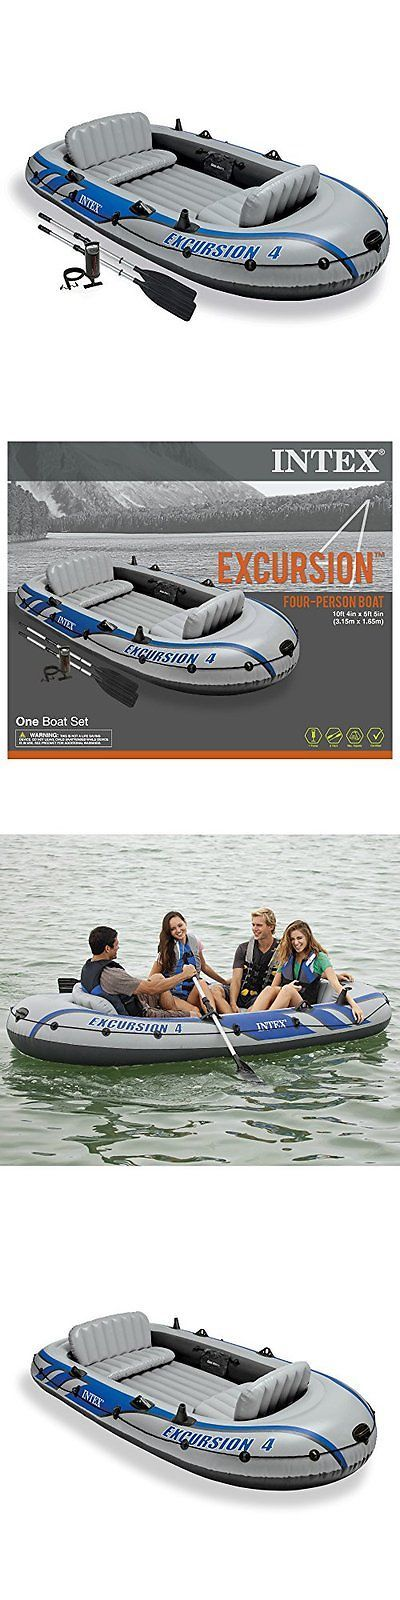 Inflatables 87090: Intex Excursion 4, 4-Person Inflatable Boat Set With Aluminum Oars - New -> BUY IT NOW ONLY: $137.68 on eBay!